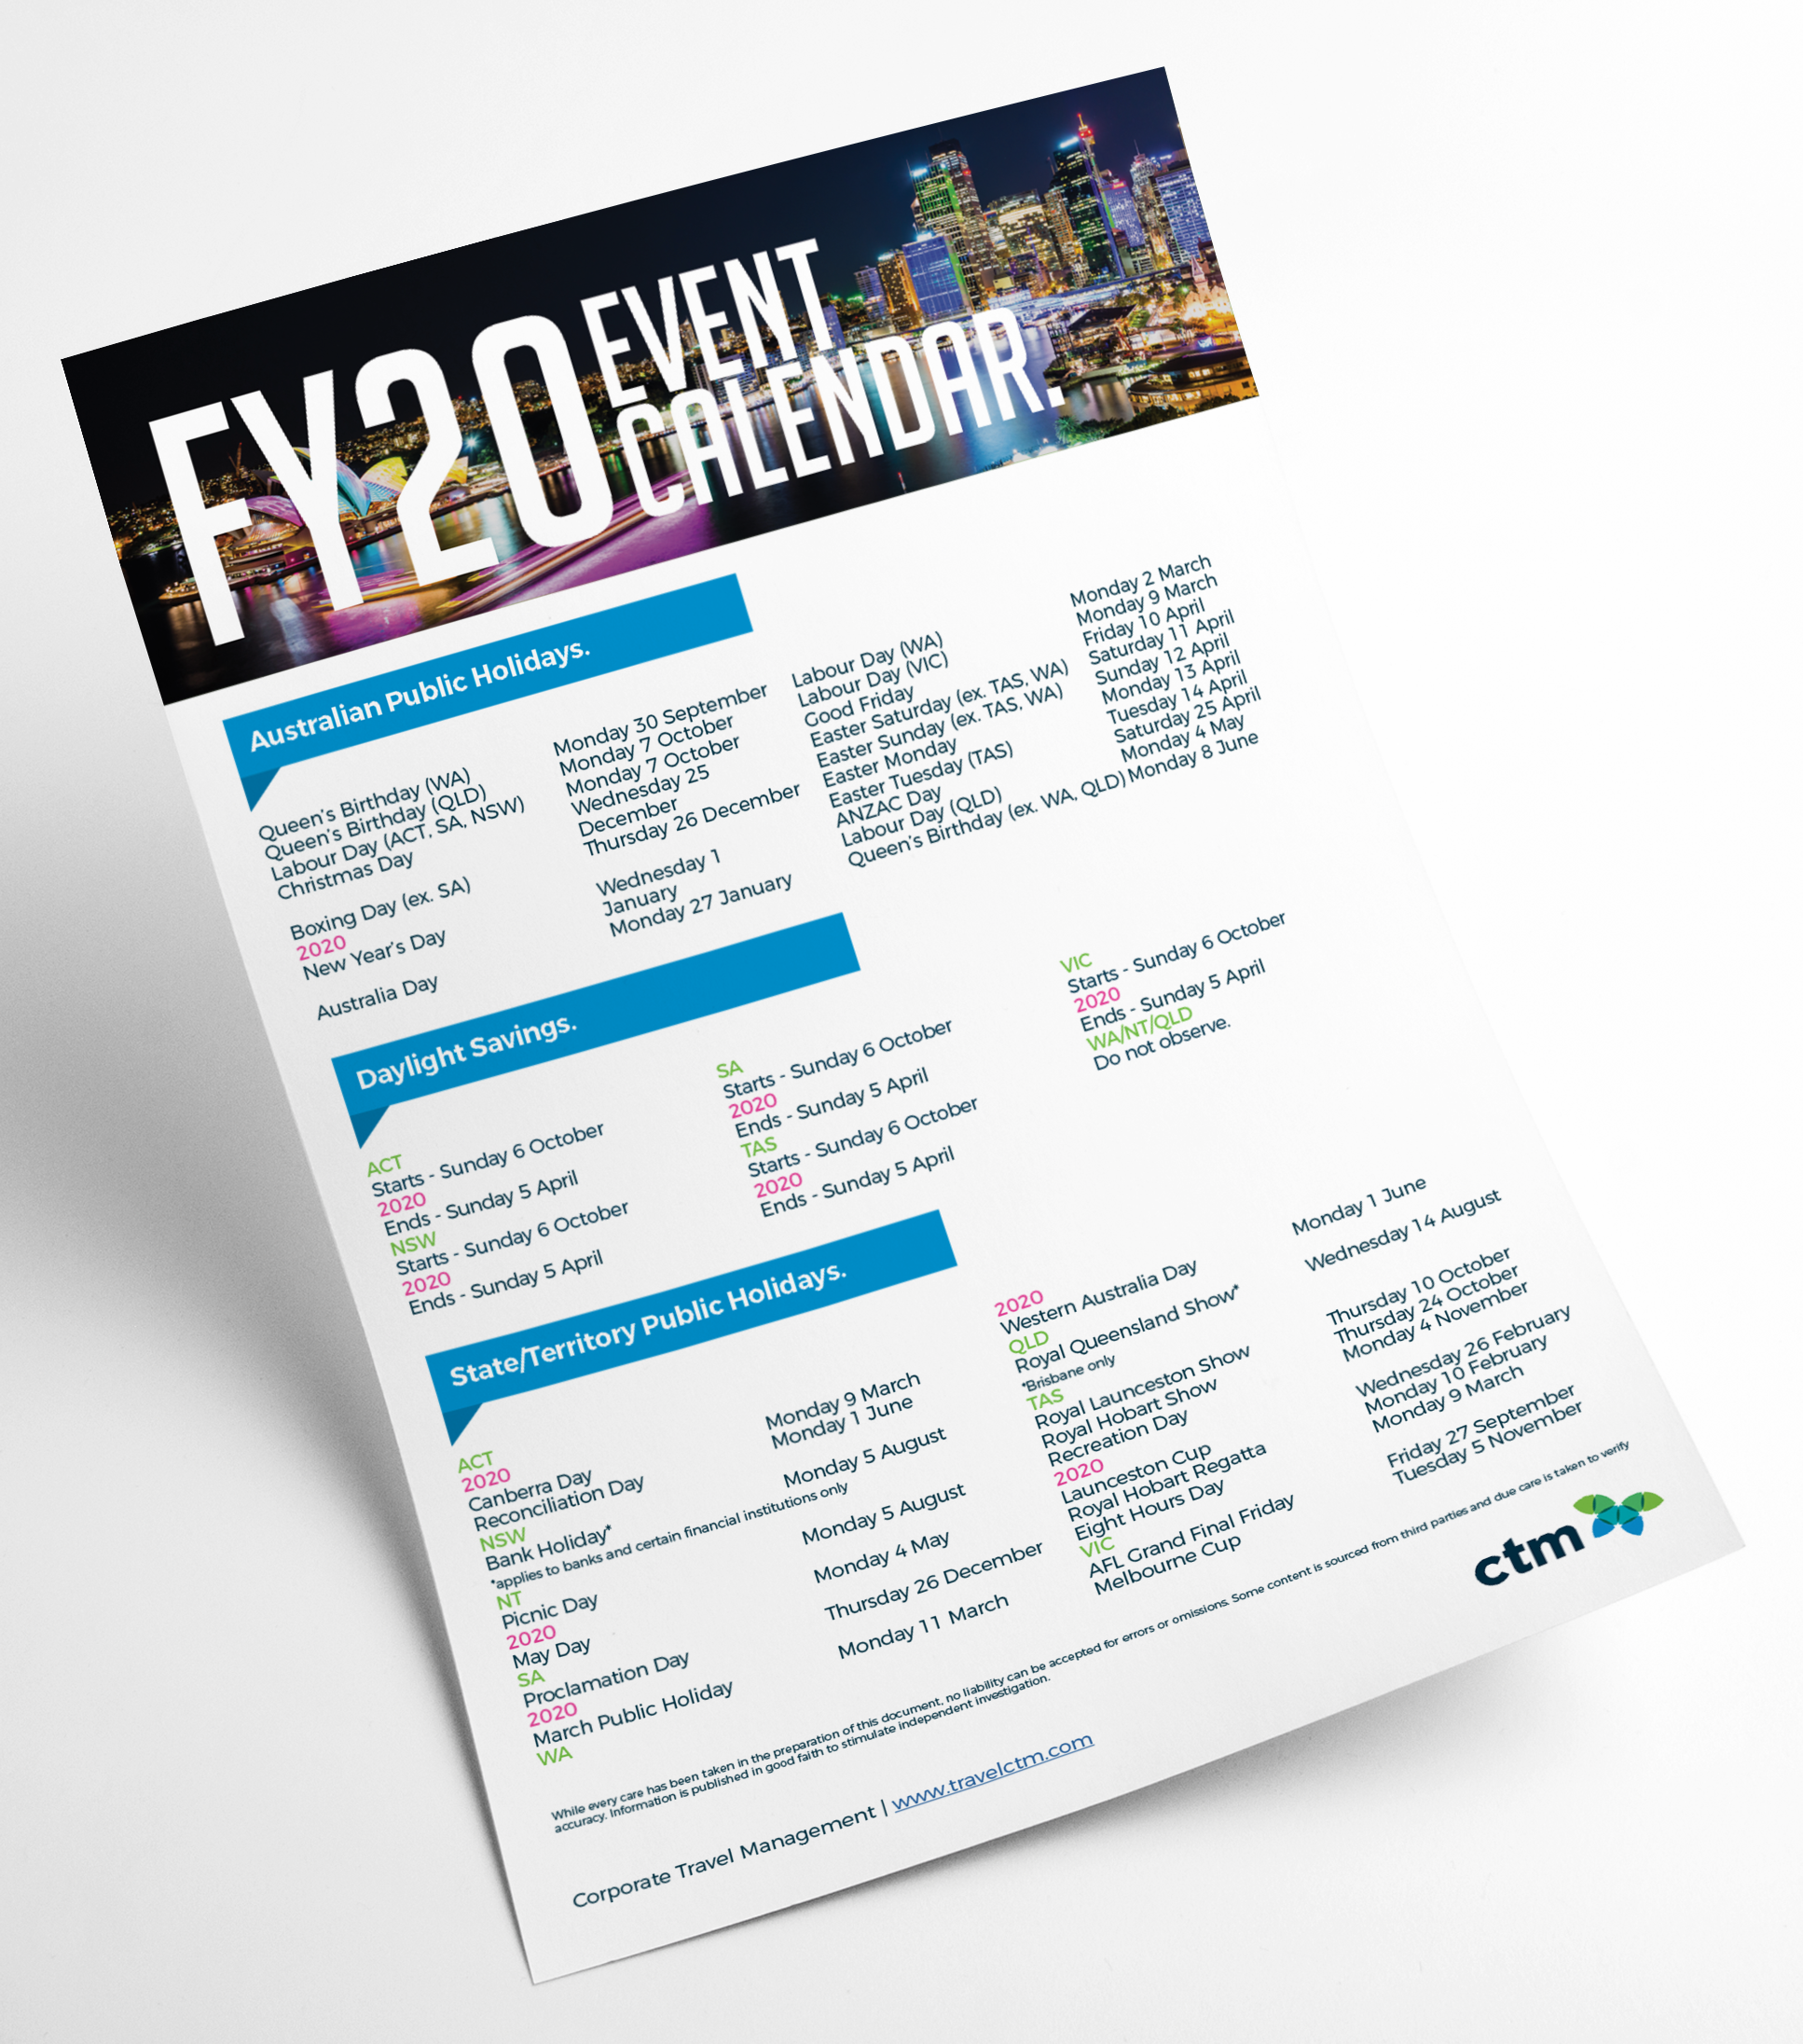 AU FY19 Event Guide